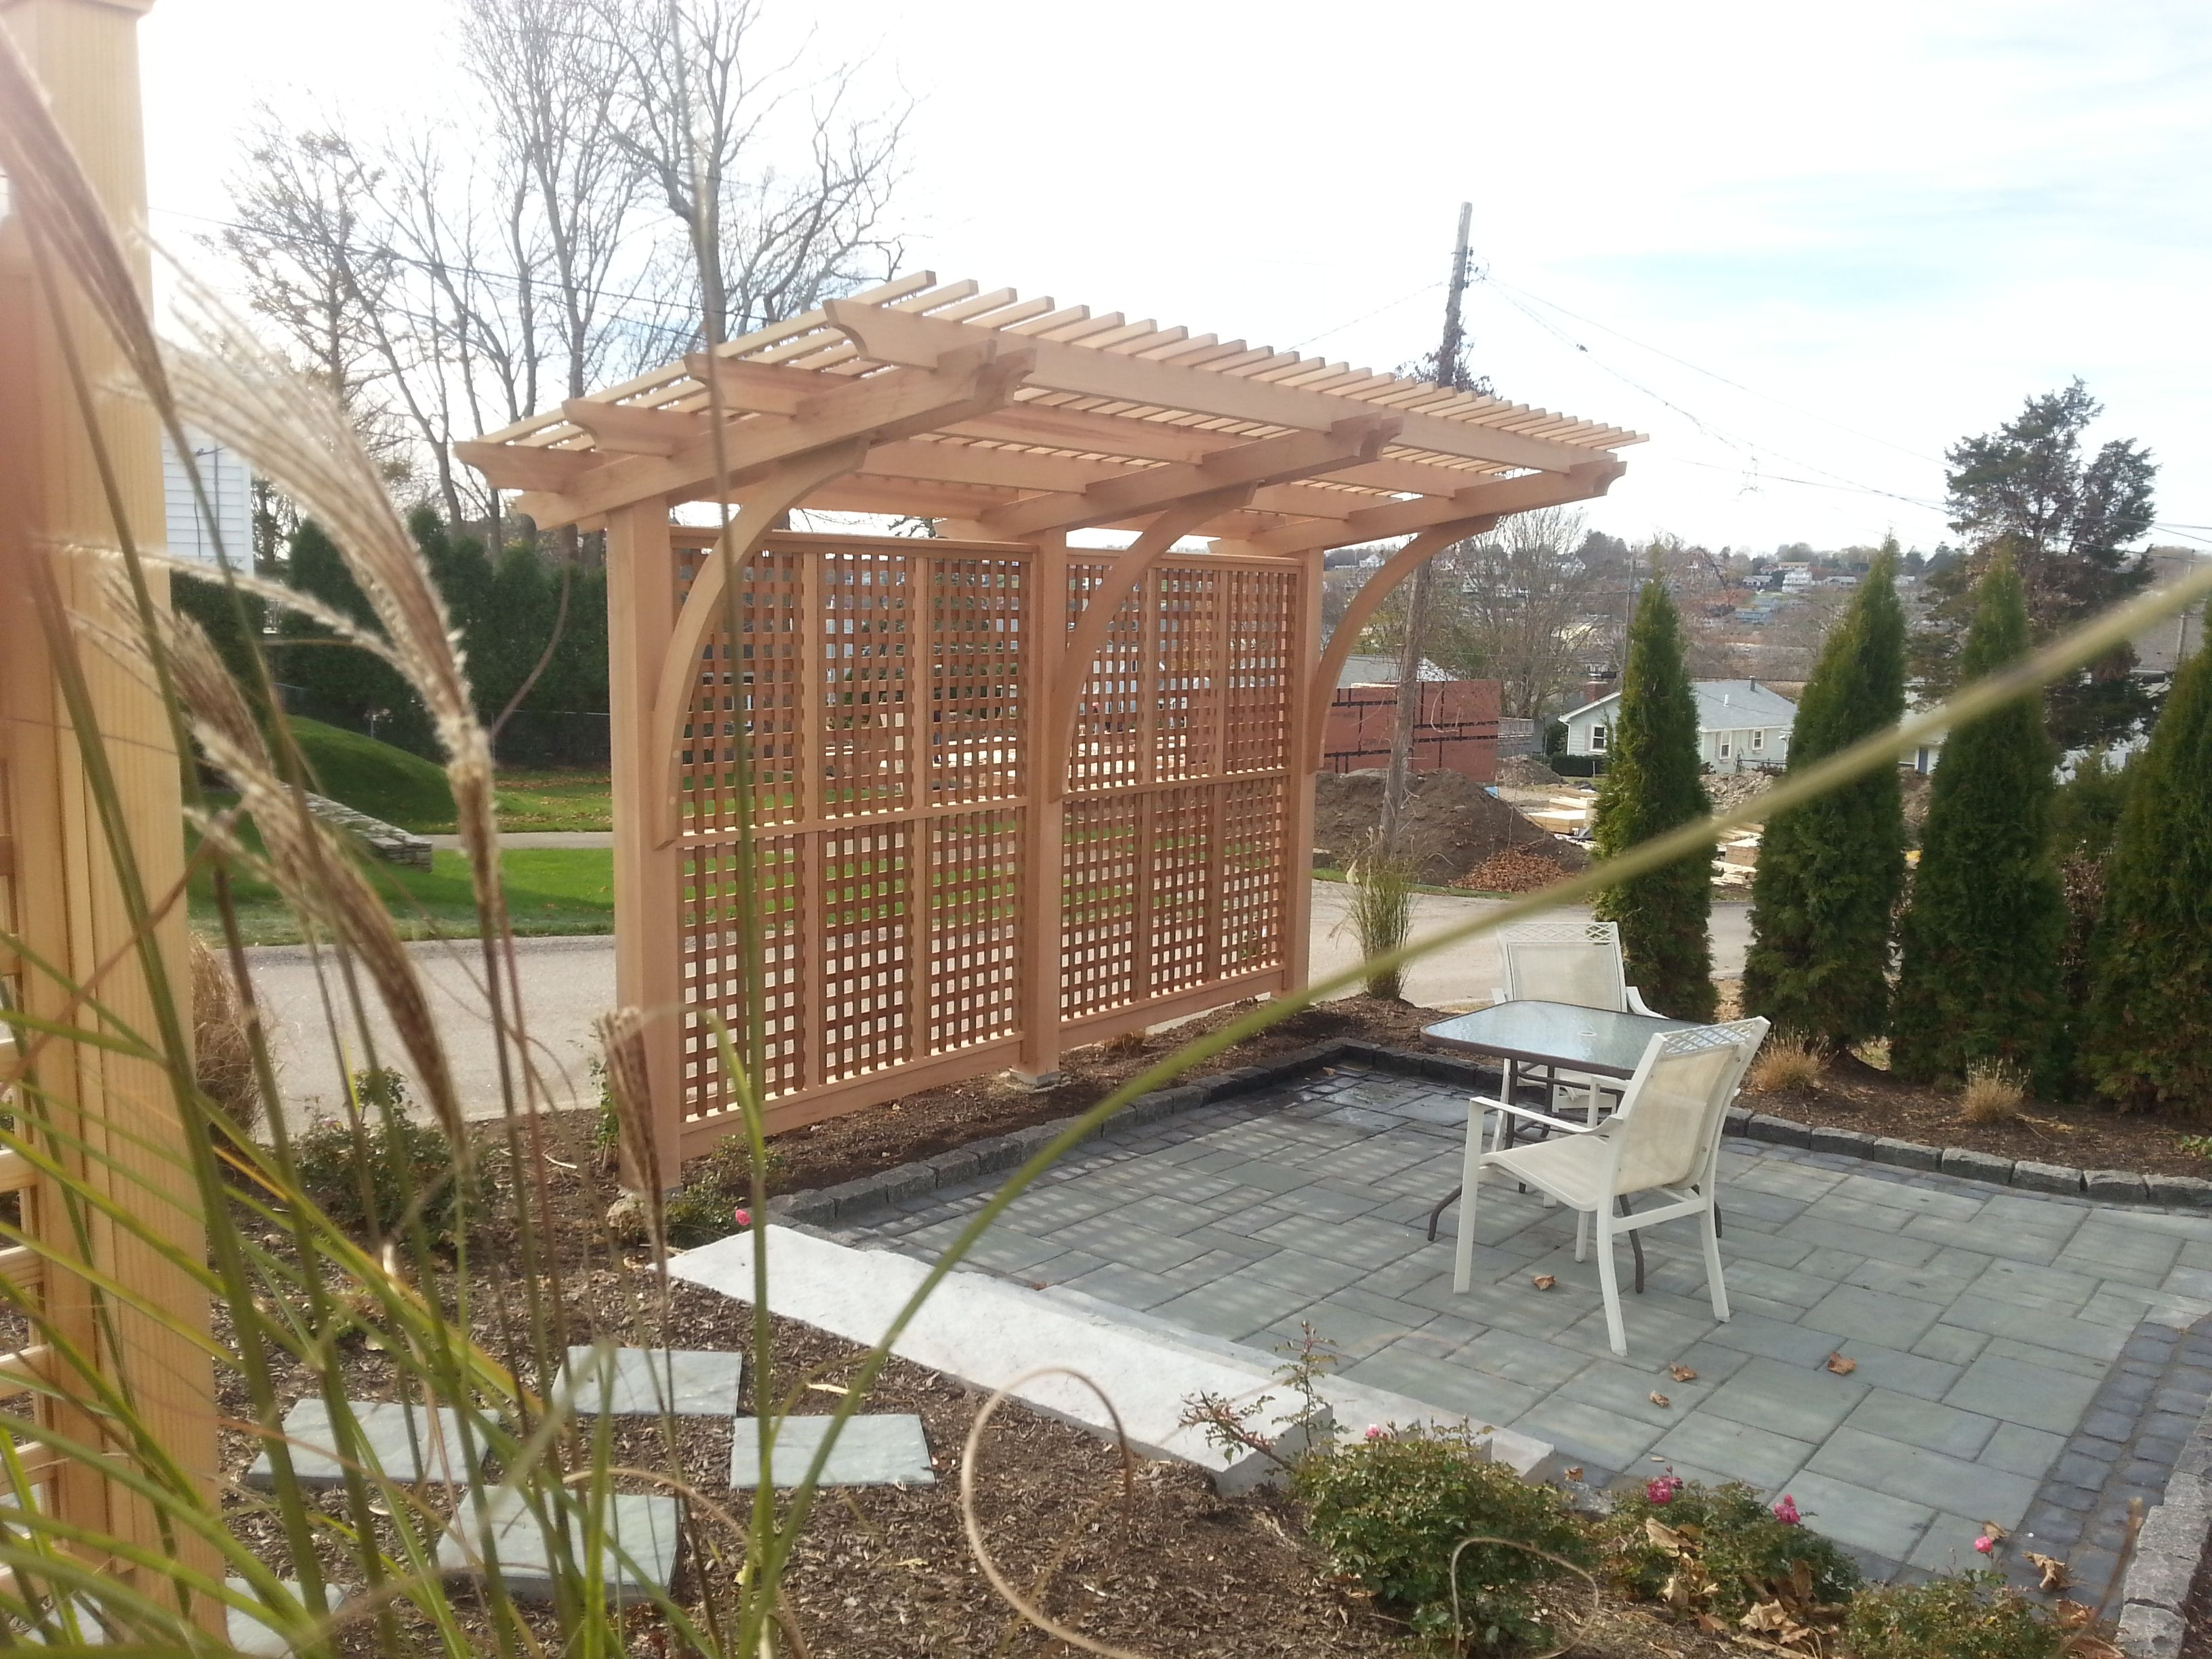 Custom trellis to match pergola landscapes by earth design - Cantilevered Pergola Cedar Structure With Mahogany Lattice Work